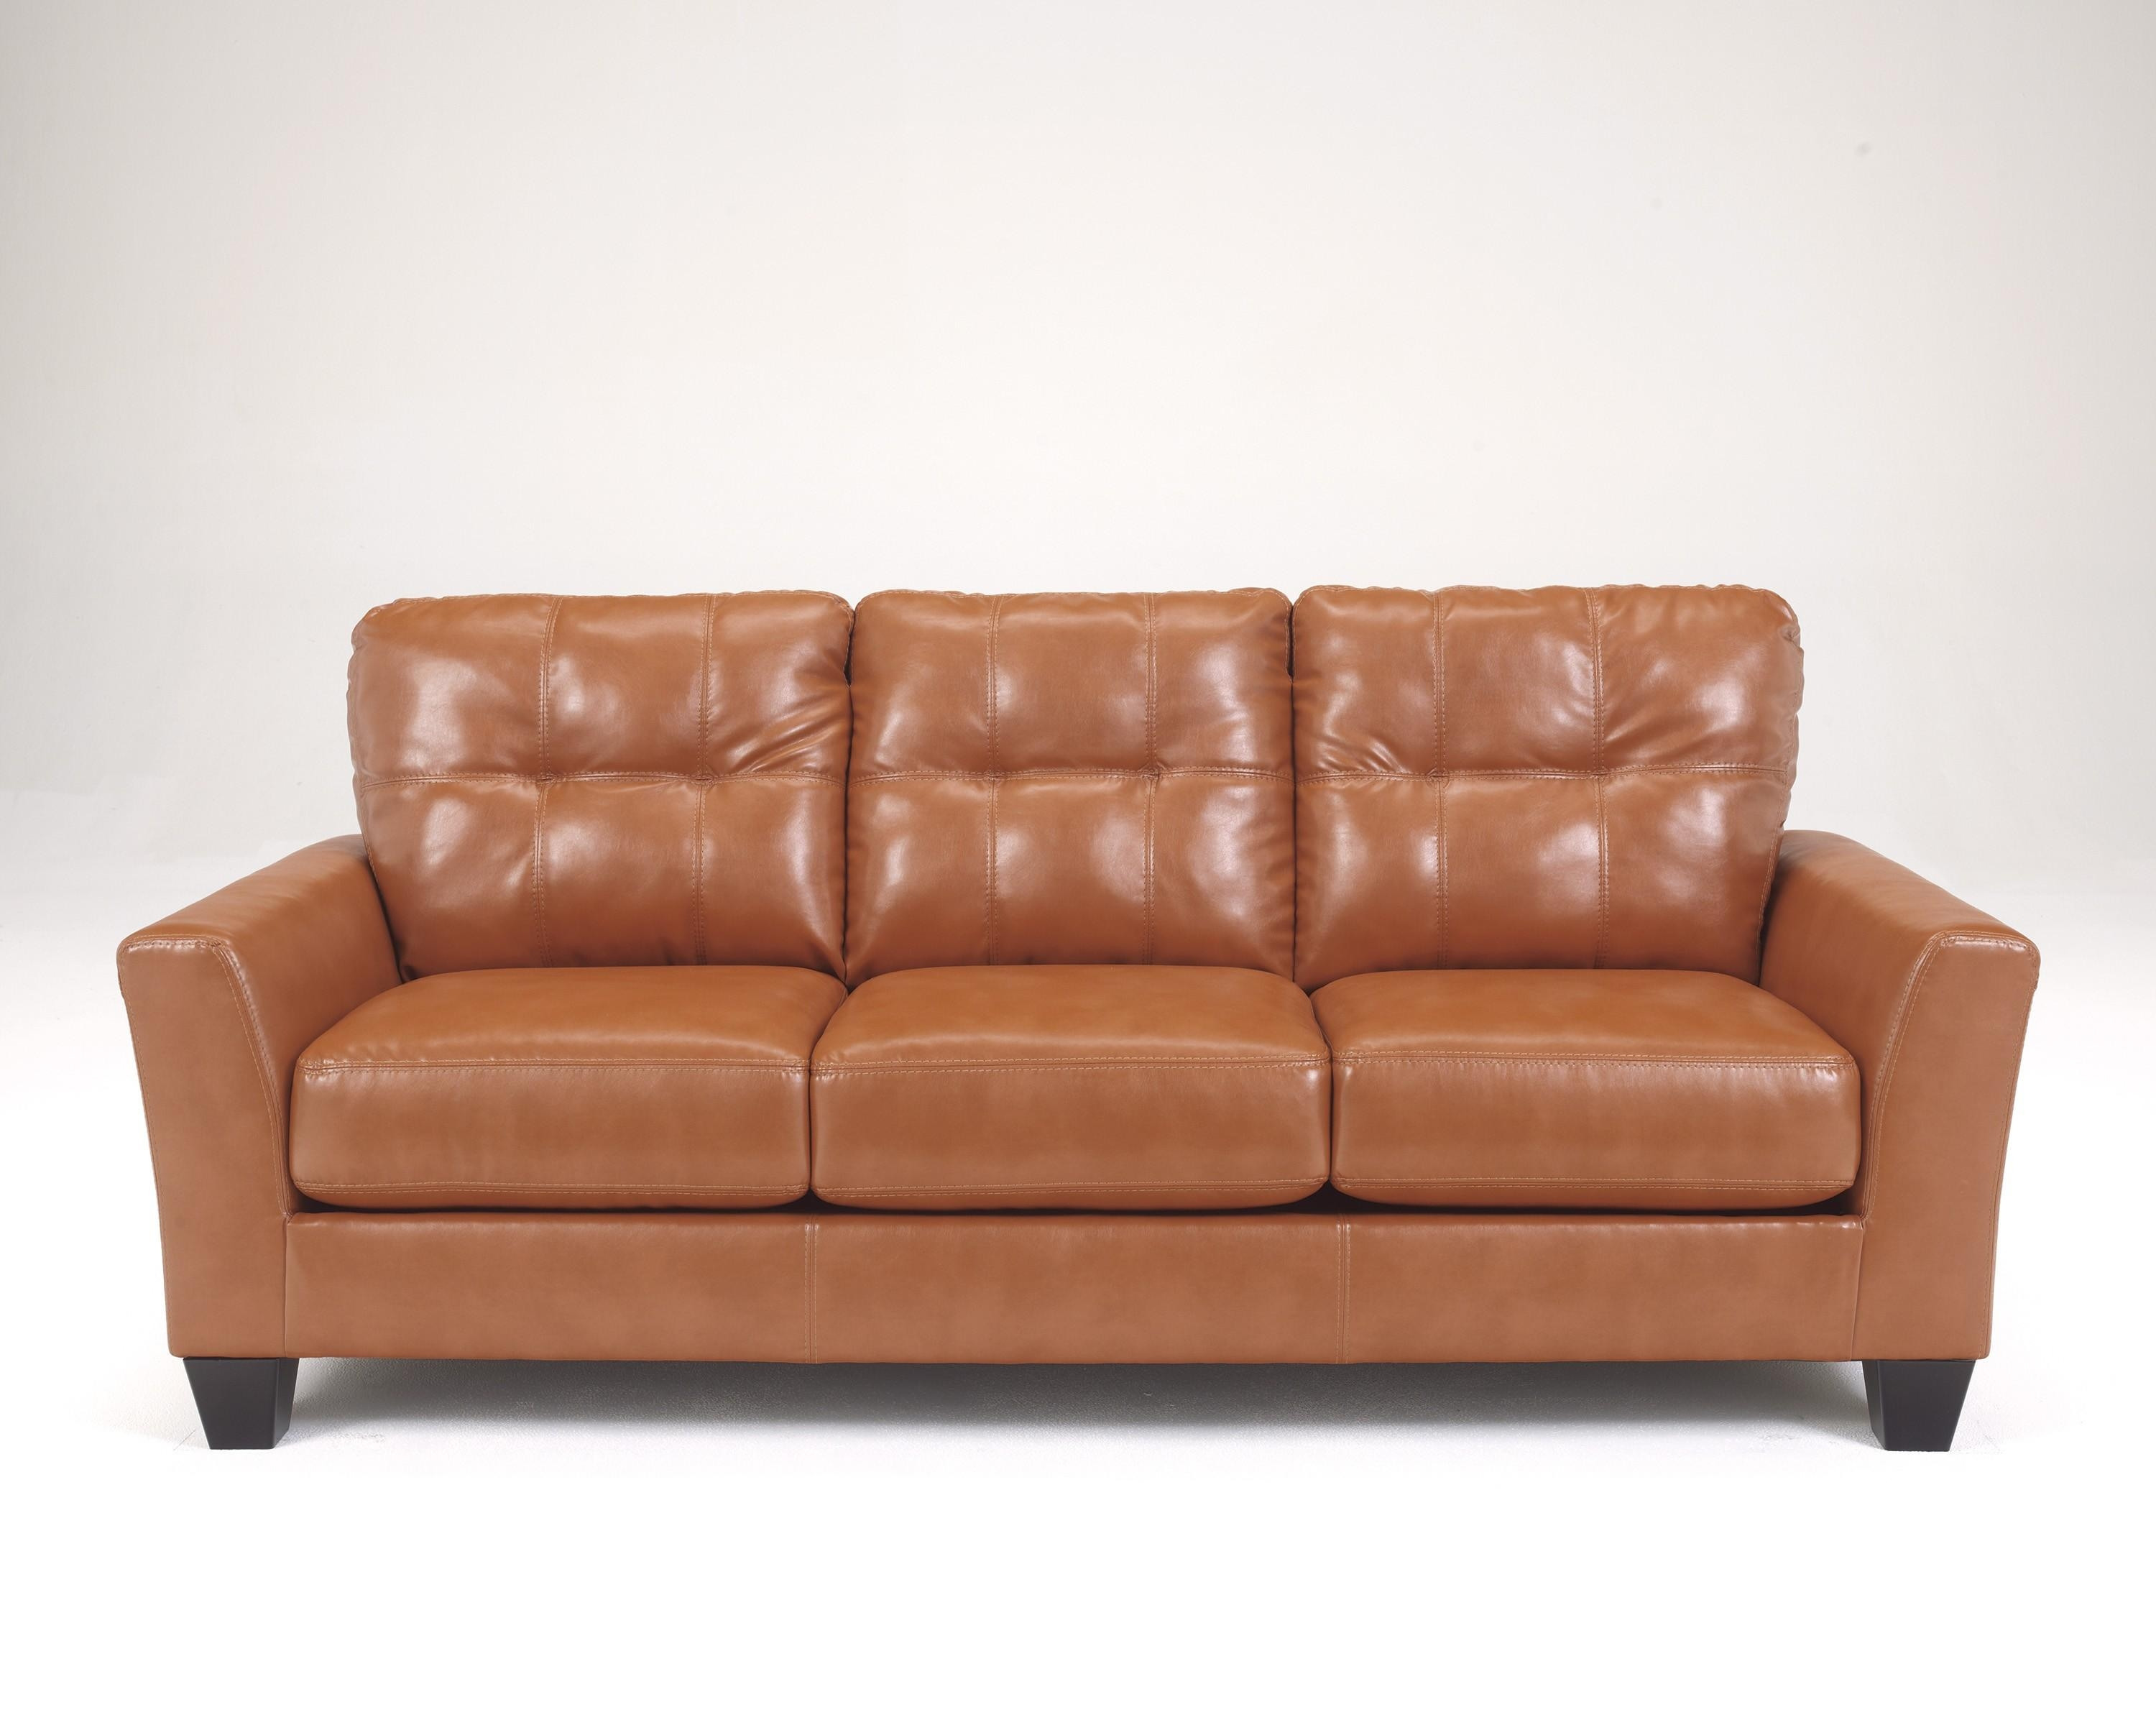 Benchcraft Leather Sofa With Ideas Photo 25331 | Kengire Pertaining To Benchcraft Leather Sofas (Image 9 of 20)